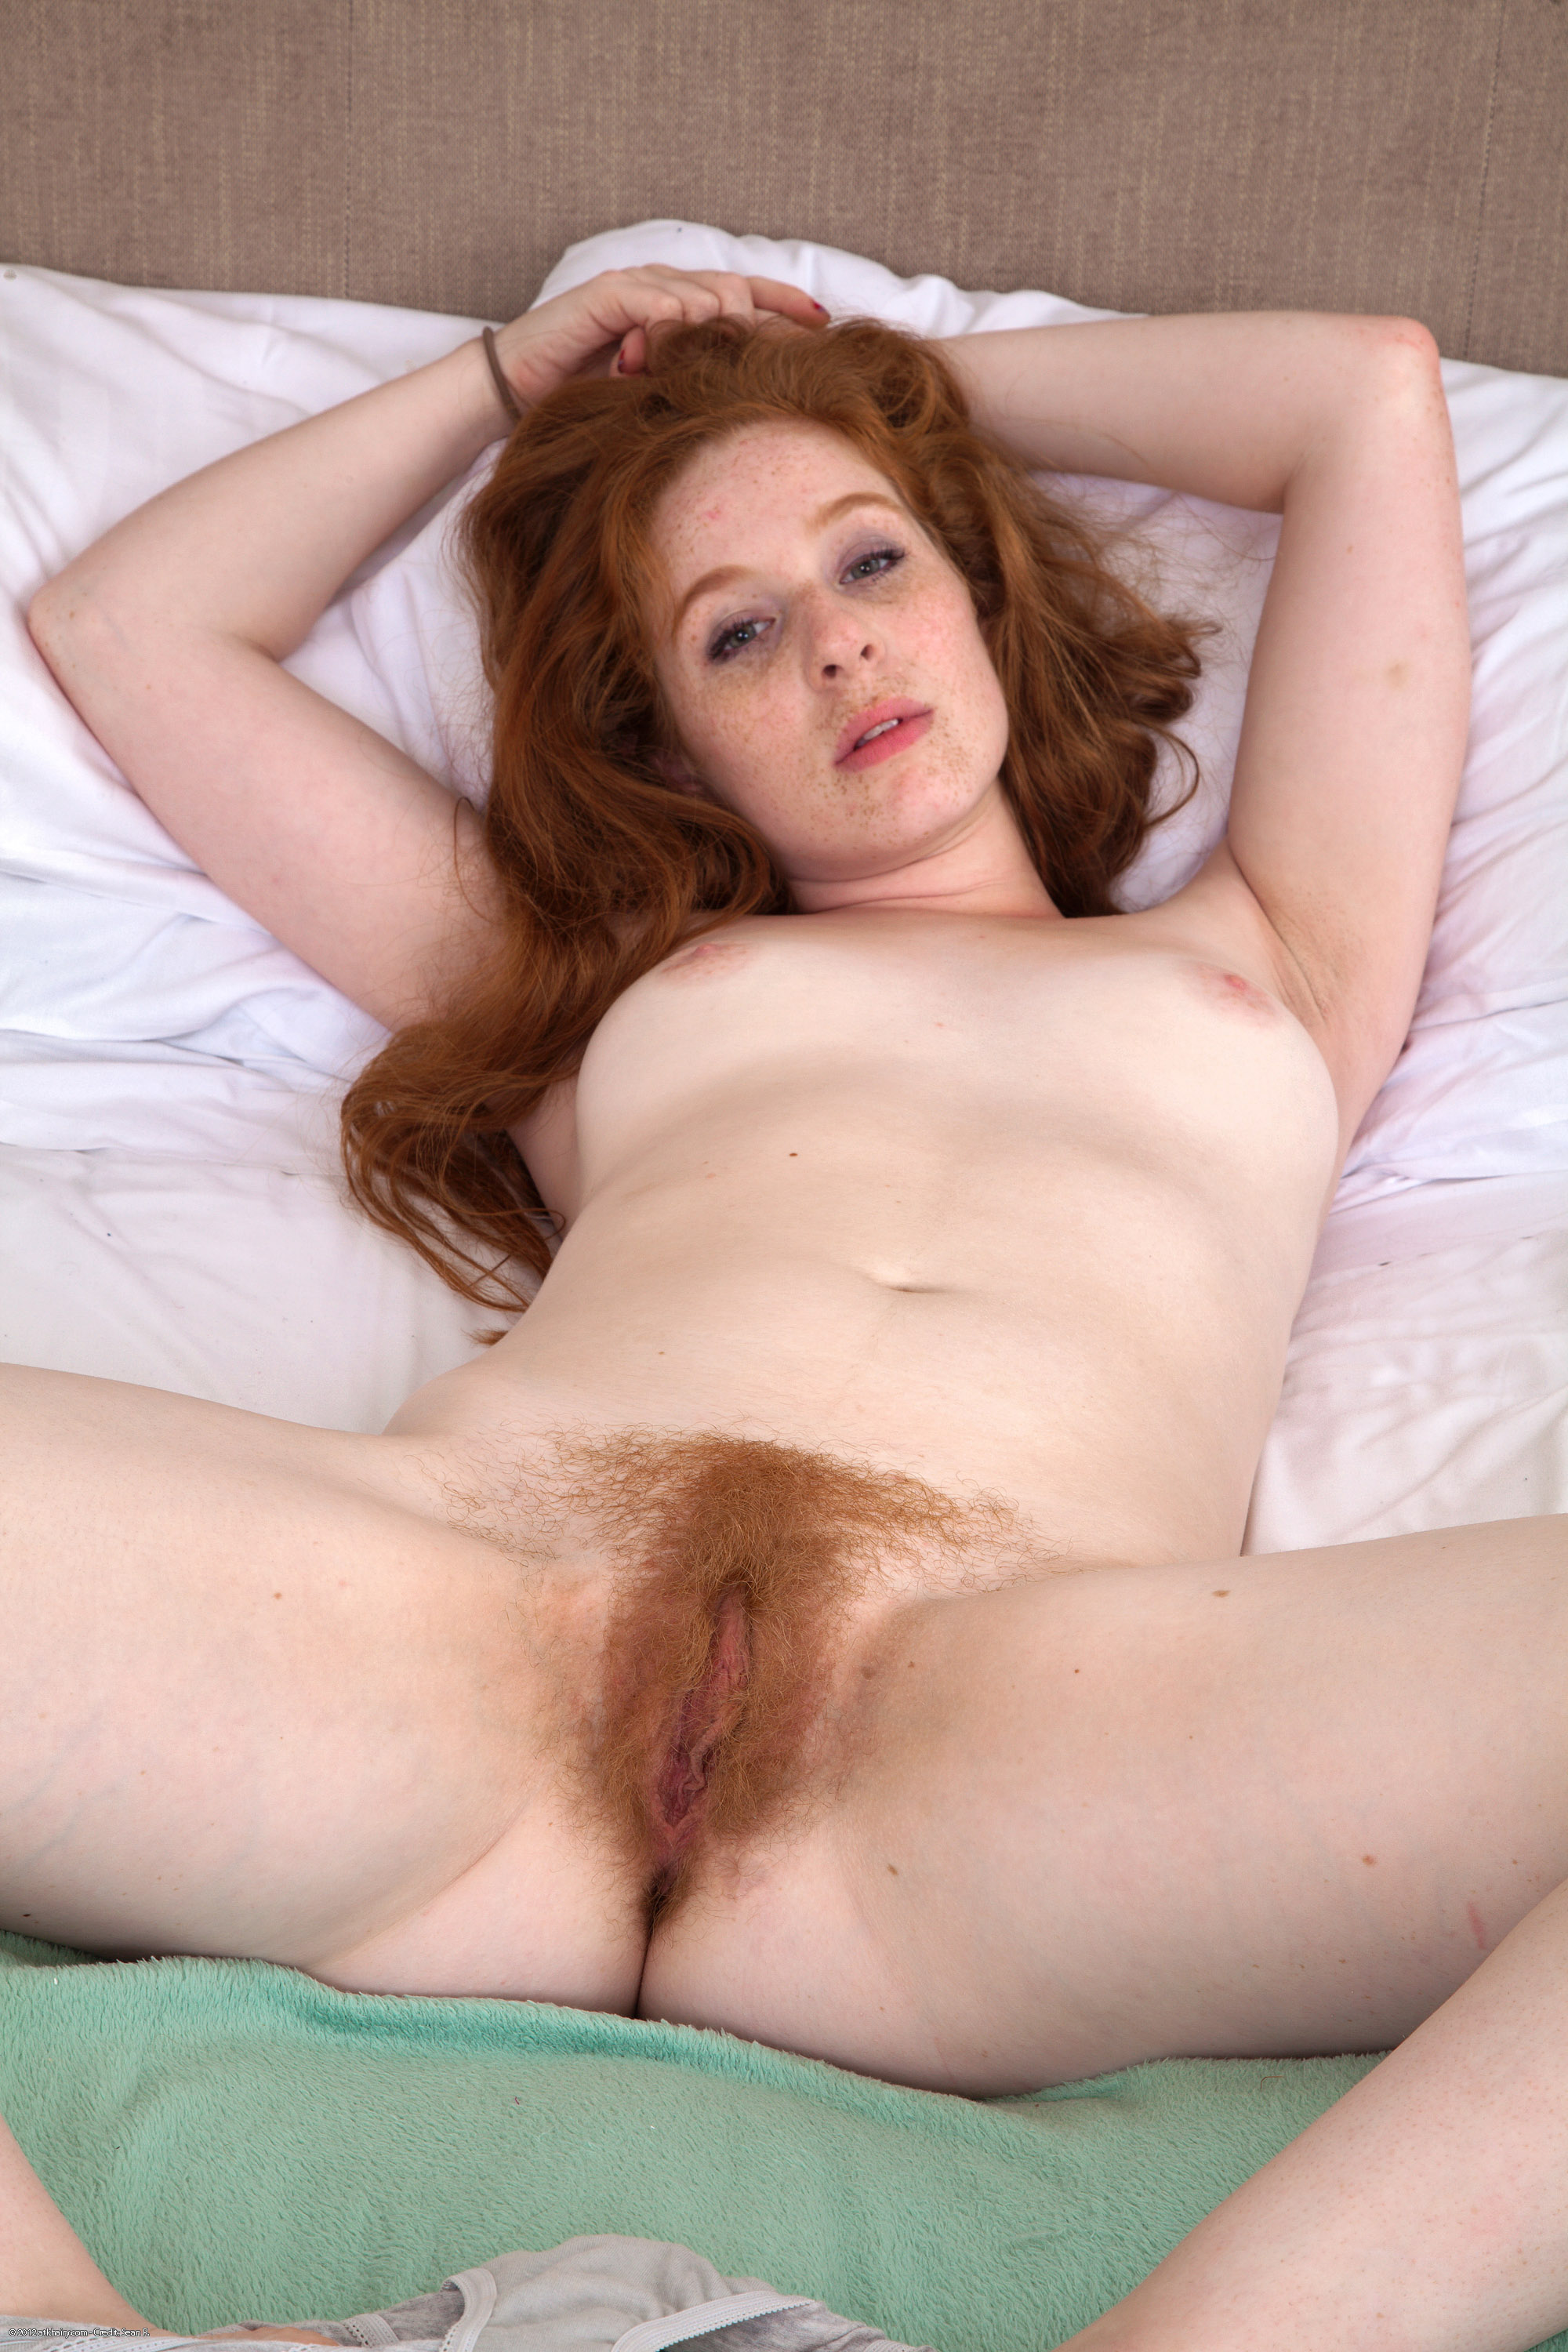 beautiful redhead amateur pussy